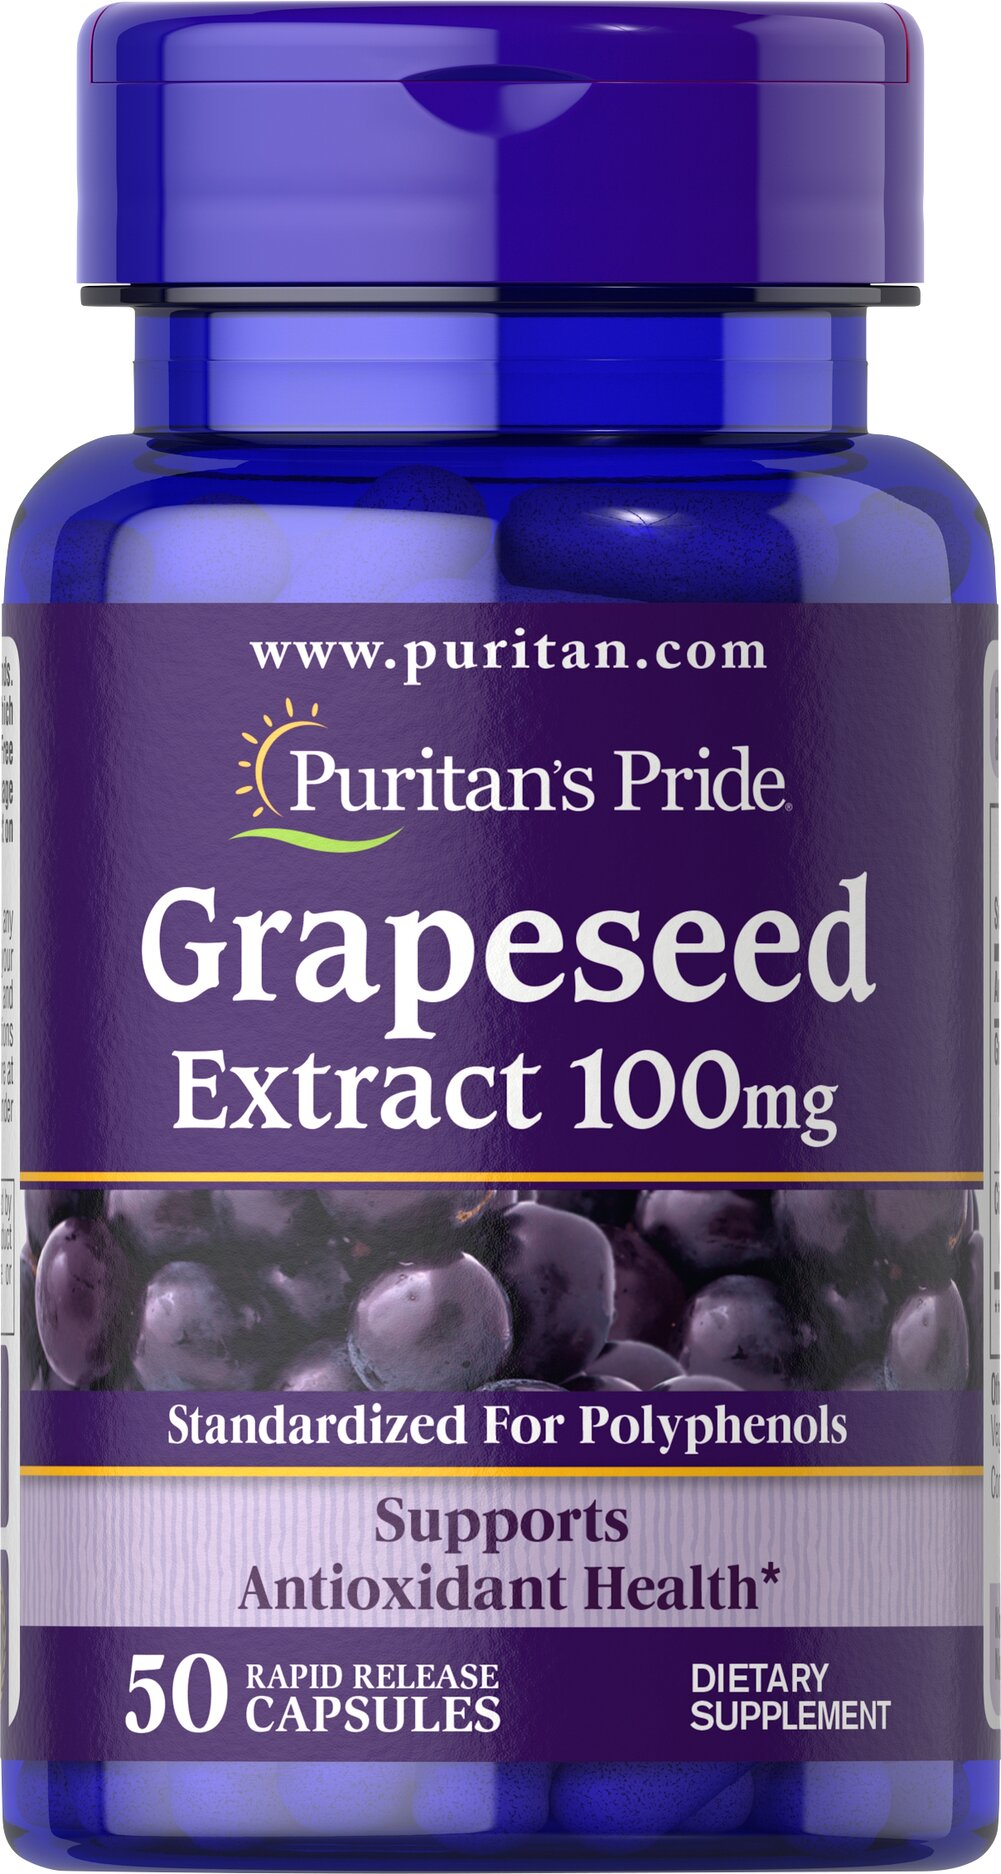 Grapeseed Extract 100 mg <p><strong>Grapeseed Extract</strong> helps maintain antioxidant health.** It contains oligomeric proanthocyanidins (OPCs), which are naturally occurring bioflavonoids. Free of yeast, wheat, sugar, preservatives, soy,  gluten, fish, artificial color, artificial flavor and sodium (less than 5 mg per serving). Standardized to contain 50% Polyphenols. Adults can take one capsule one or two times daily.</p> 50 Capsules 100 mg $9.99